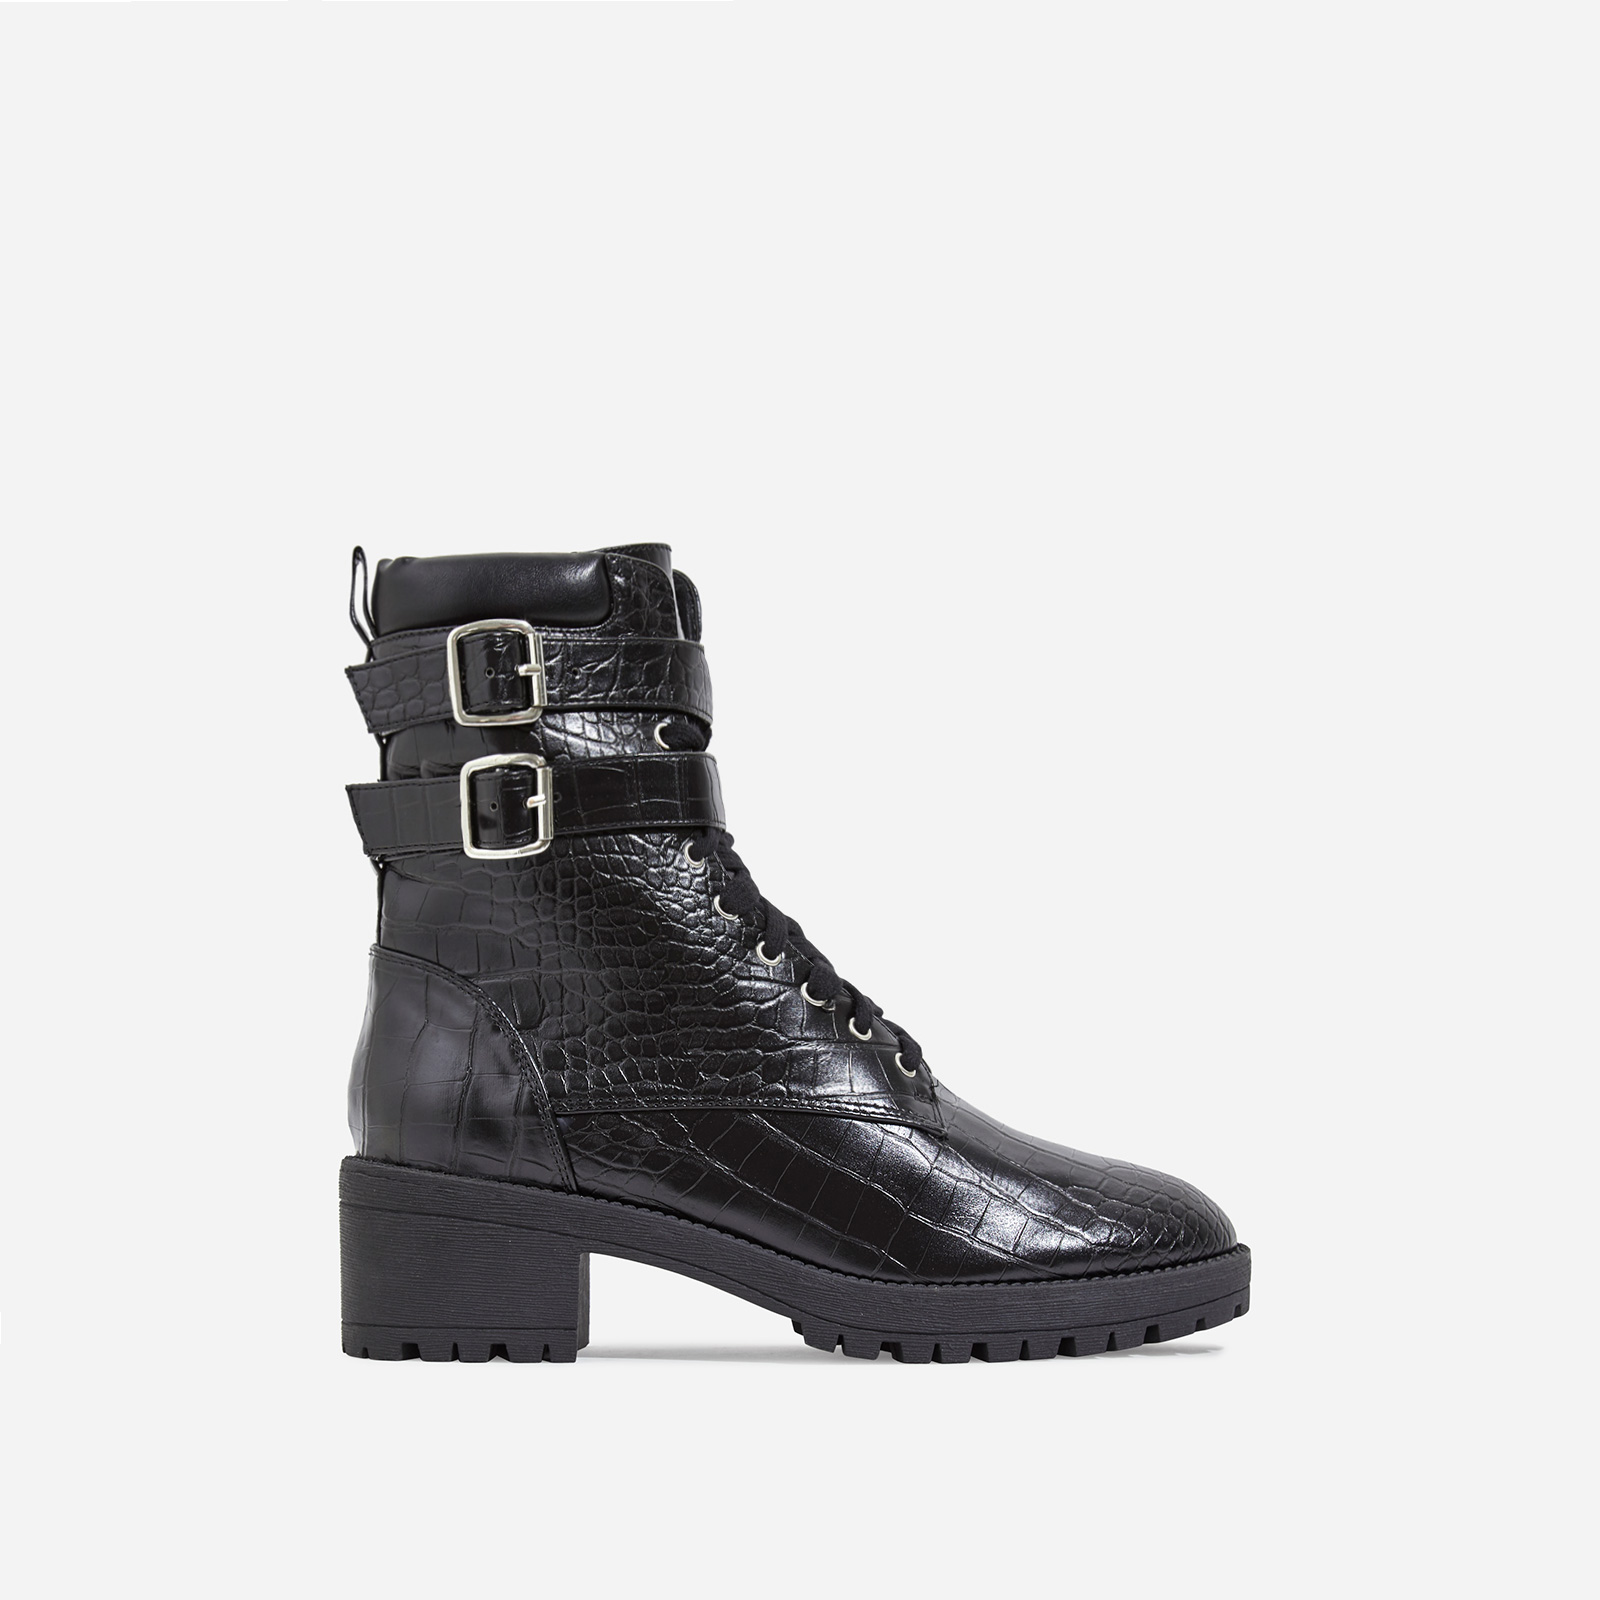 Jovi Lace Up Ankle Biker Boot In Black Croc Print Faux Leather